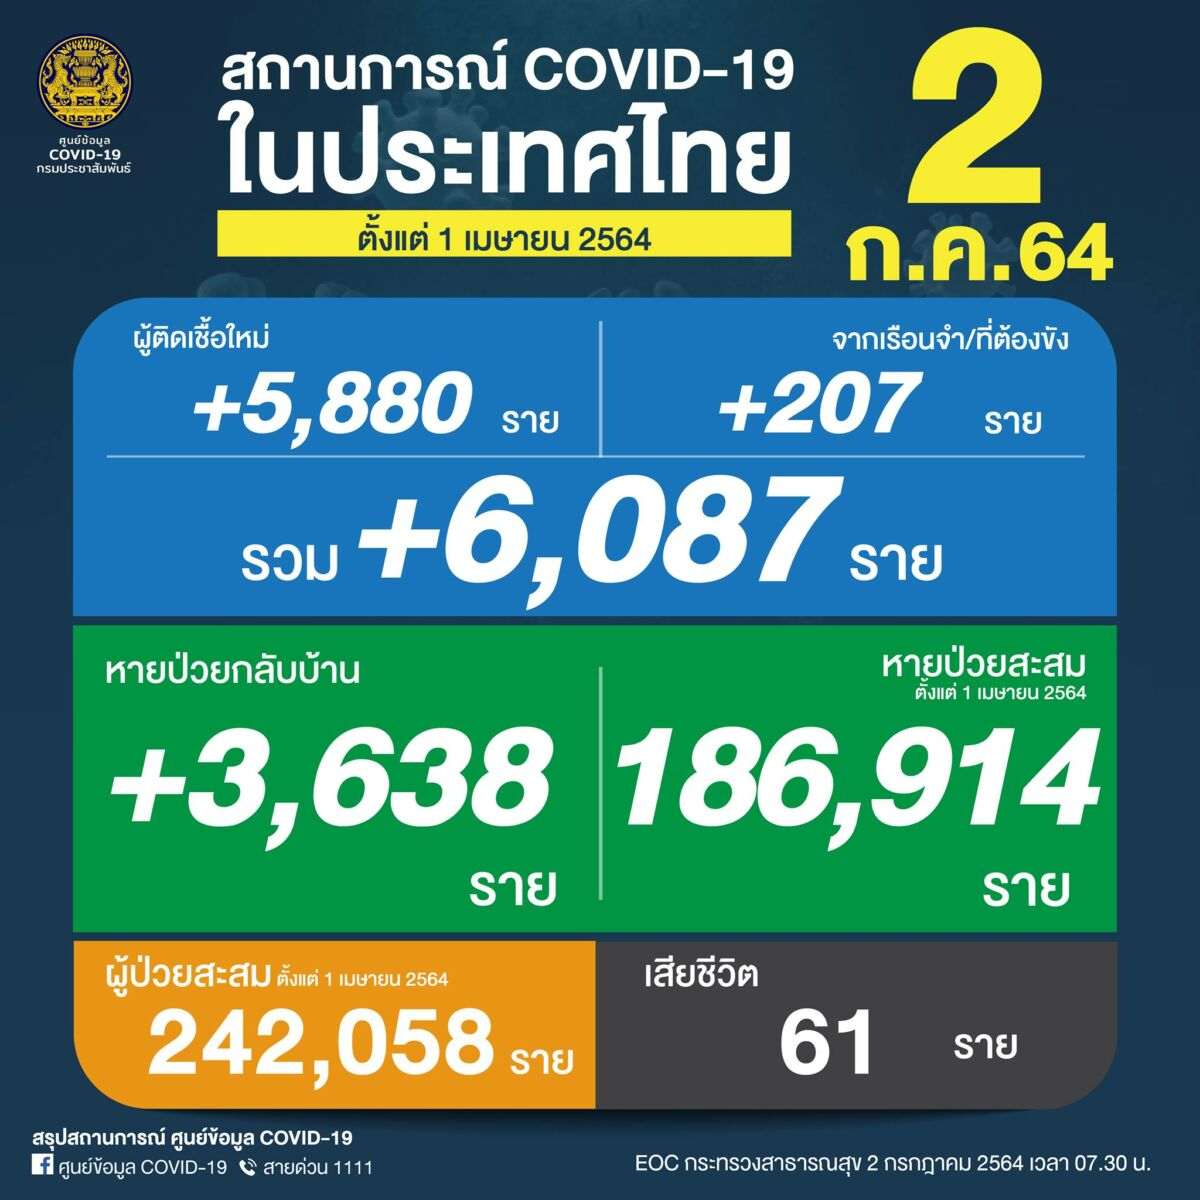 Friday Covid Update: Another record high, 61 deaths and 6,087 new cases   News by Thaiger